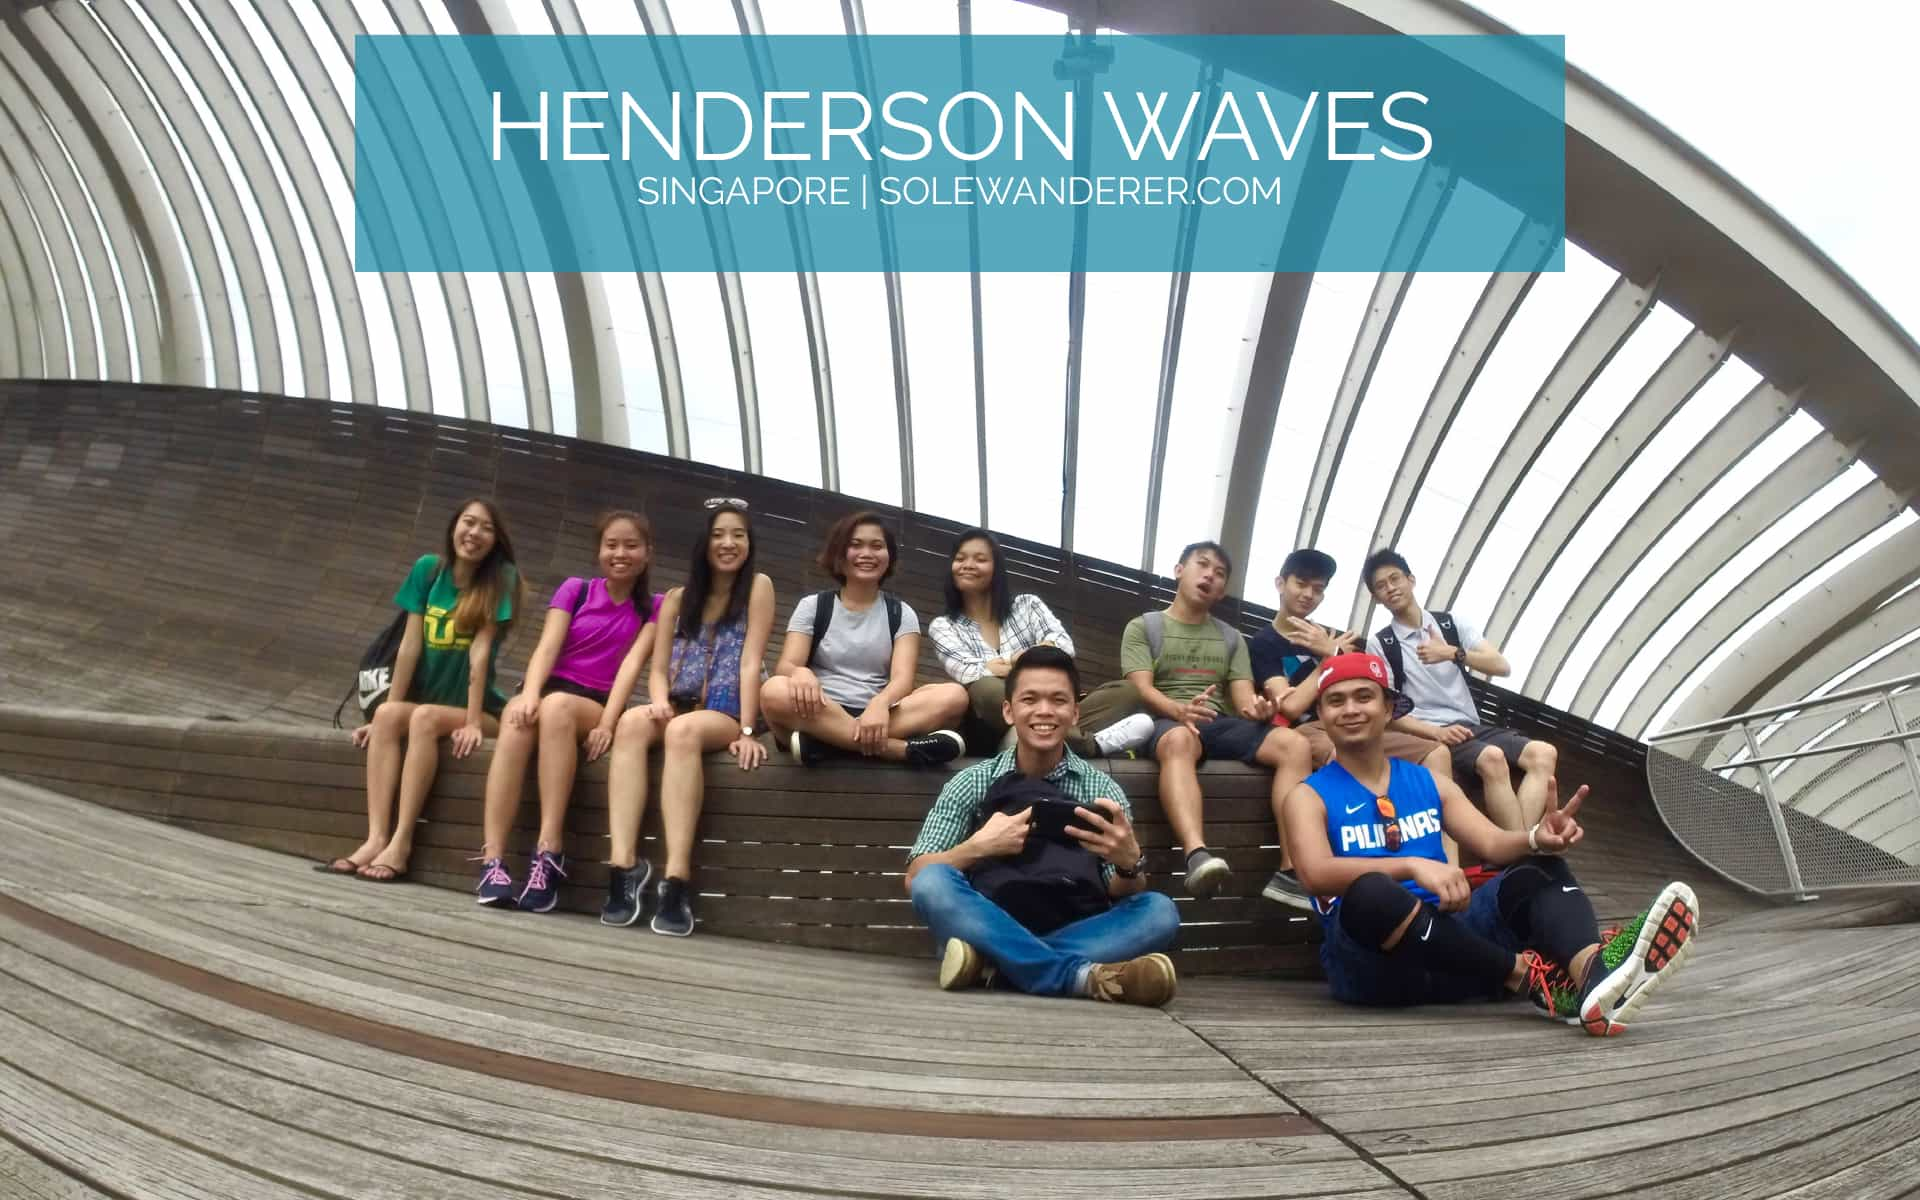 Henderson Waves Singapore -The Sole Wanderer.